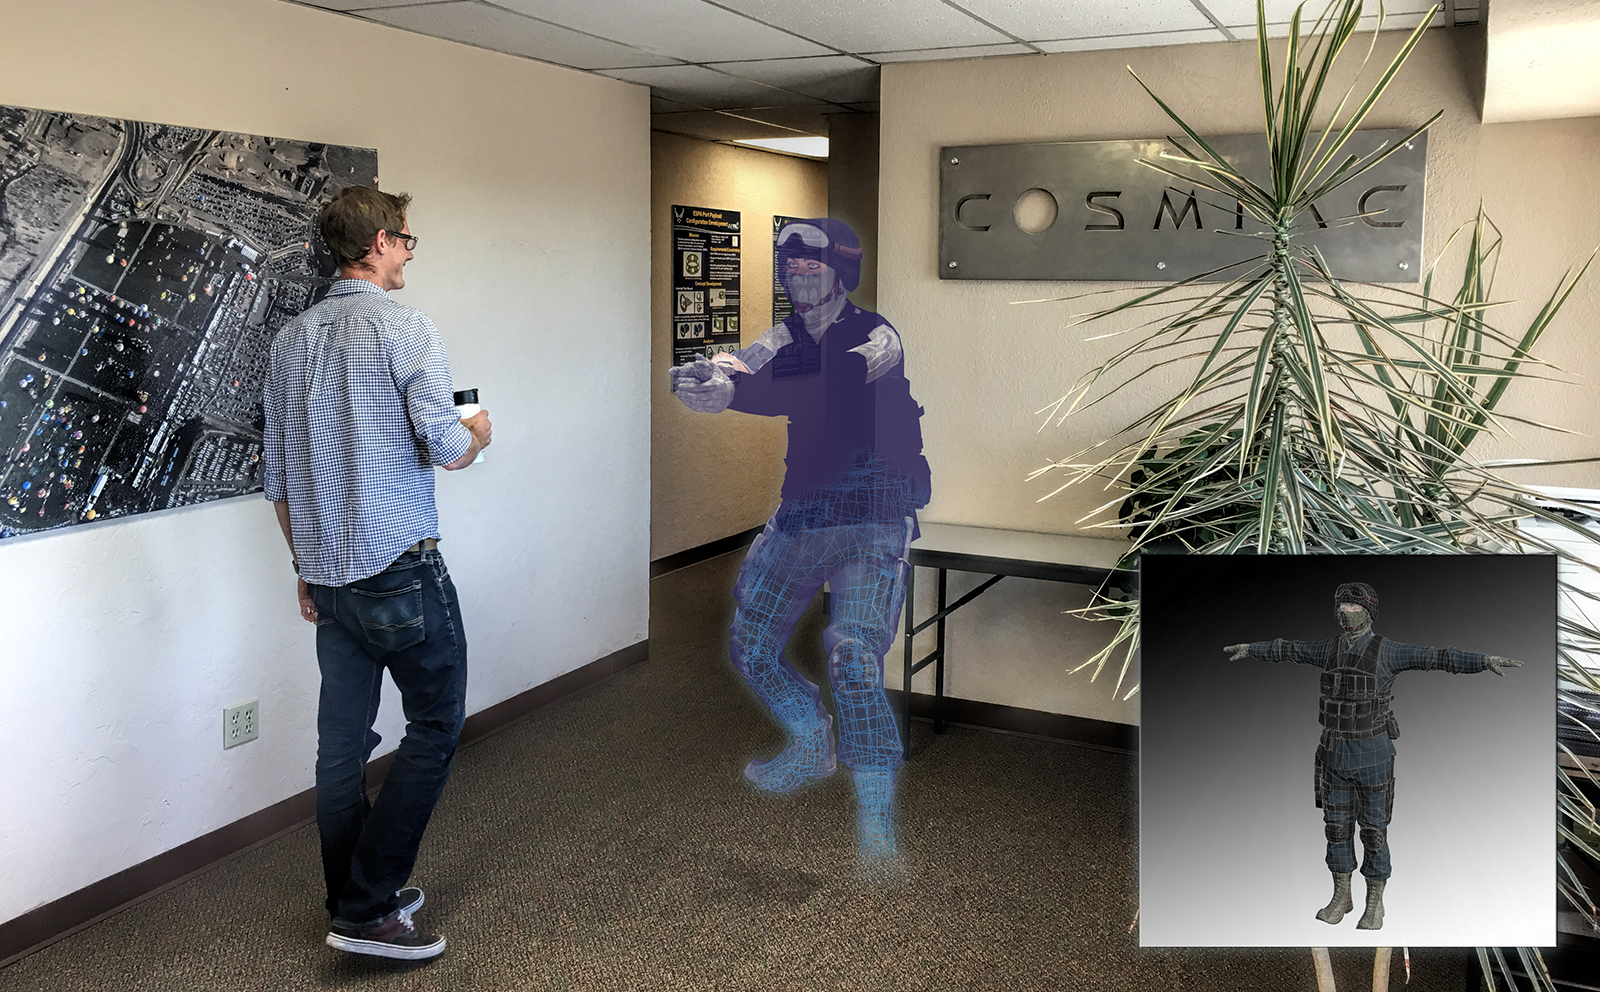 image virtual reality in the cosmiac office